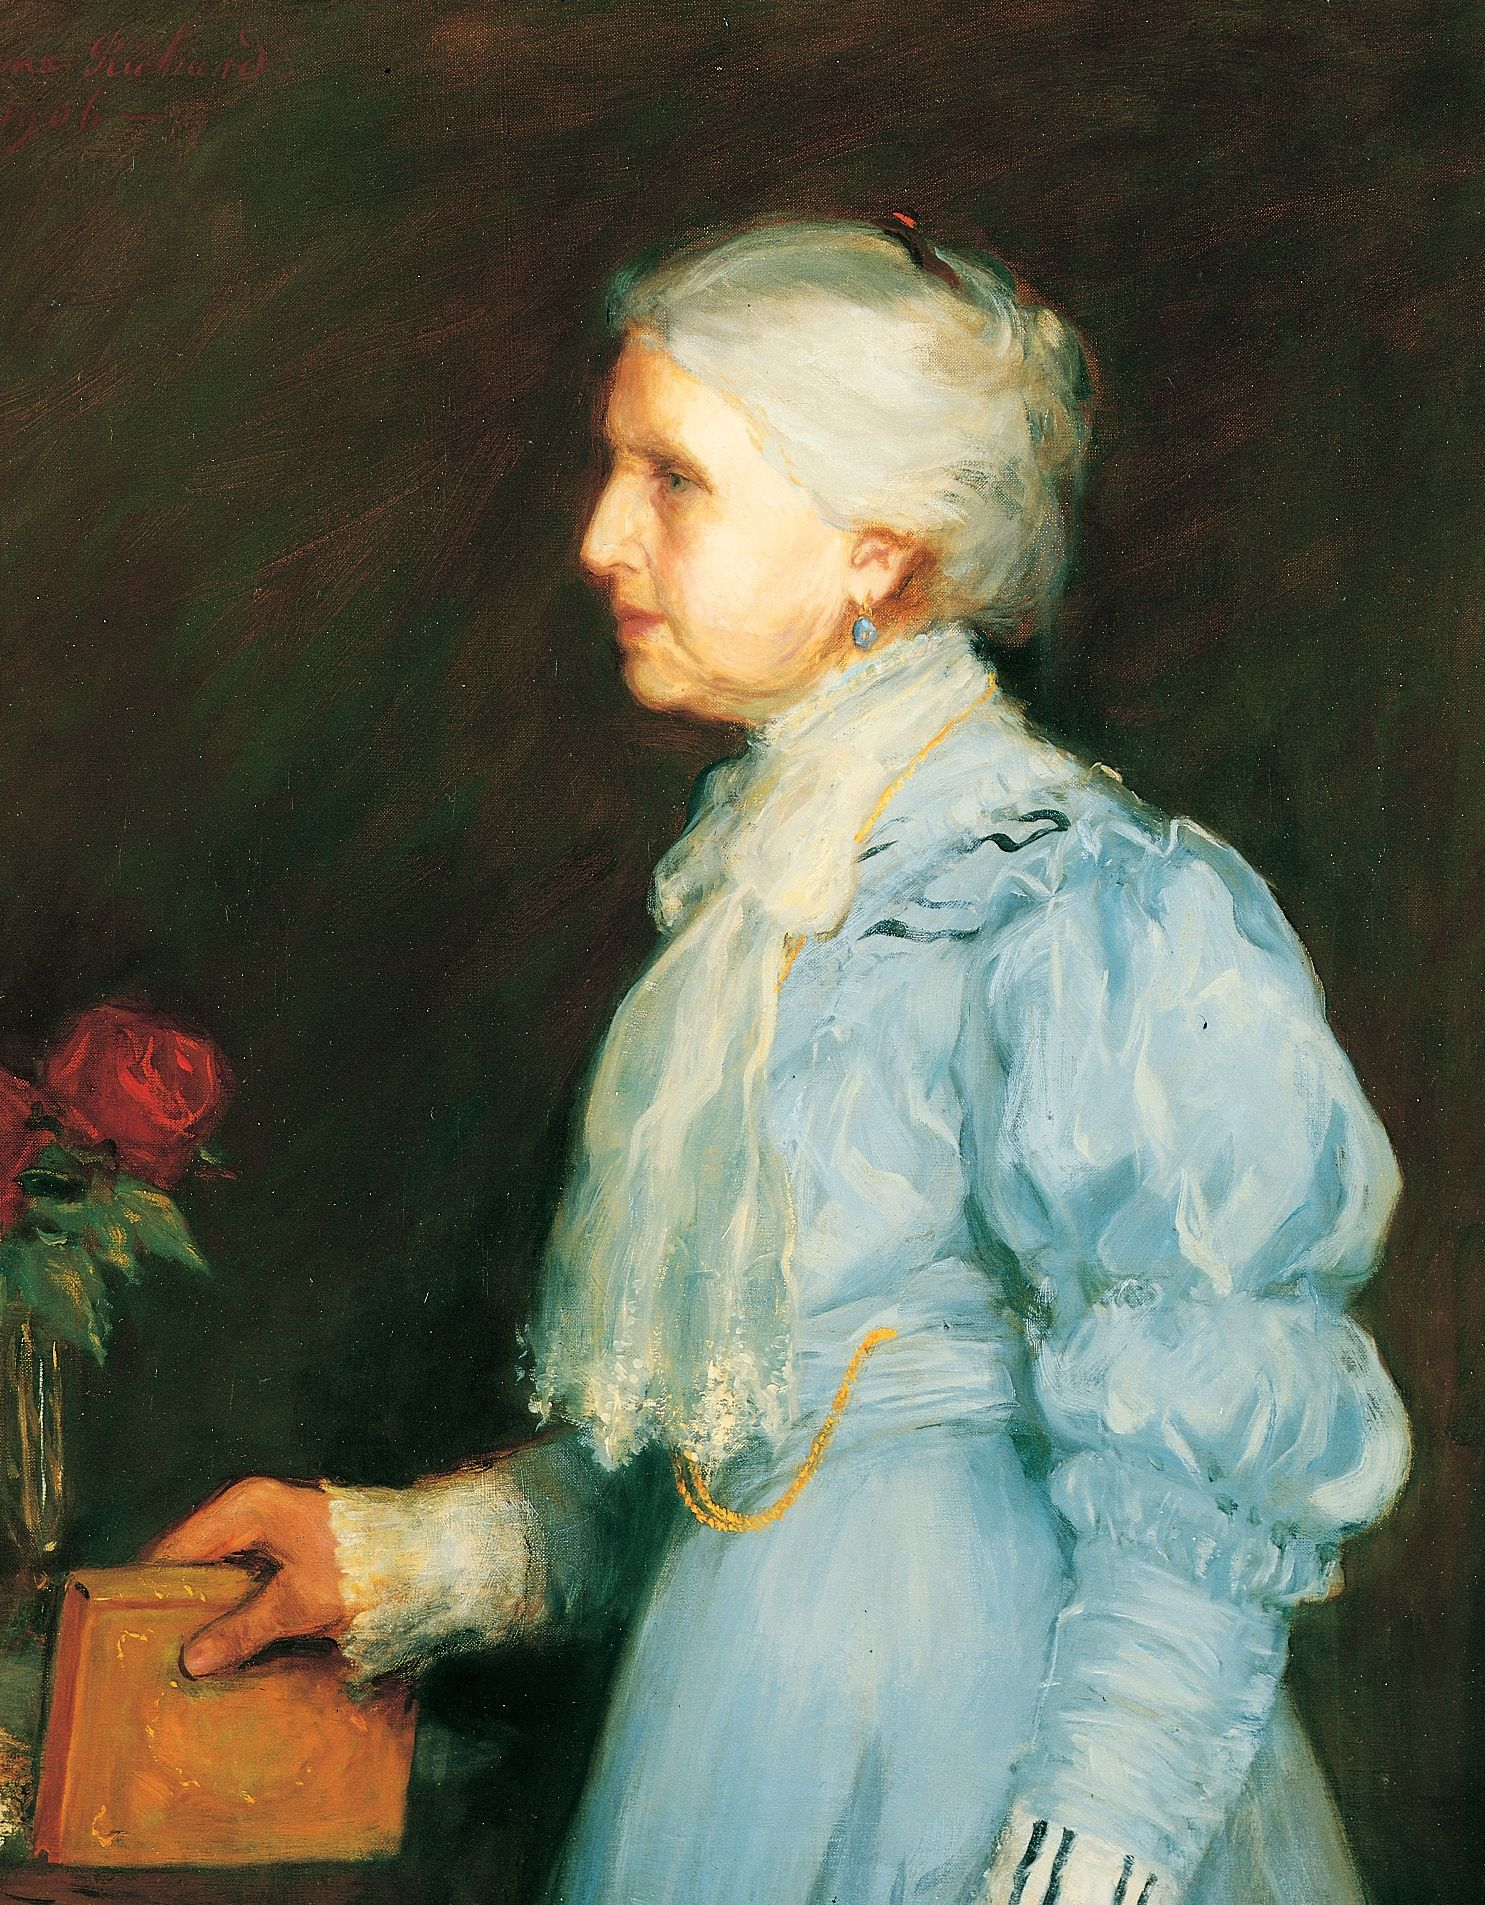 A portrait of Emmeline B. Woodward Wells, who was the fifth general president of the Relief Society from 1910 to 1921; painted by Lee Greene Richards.